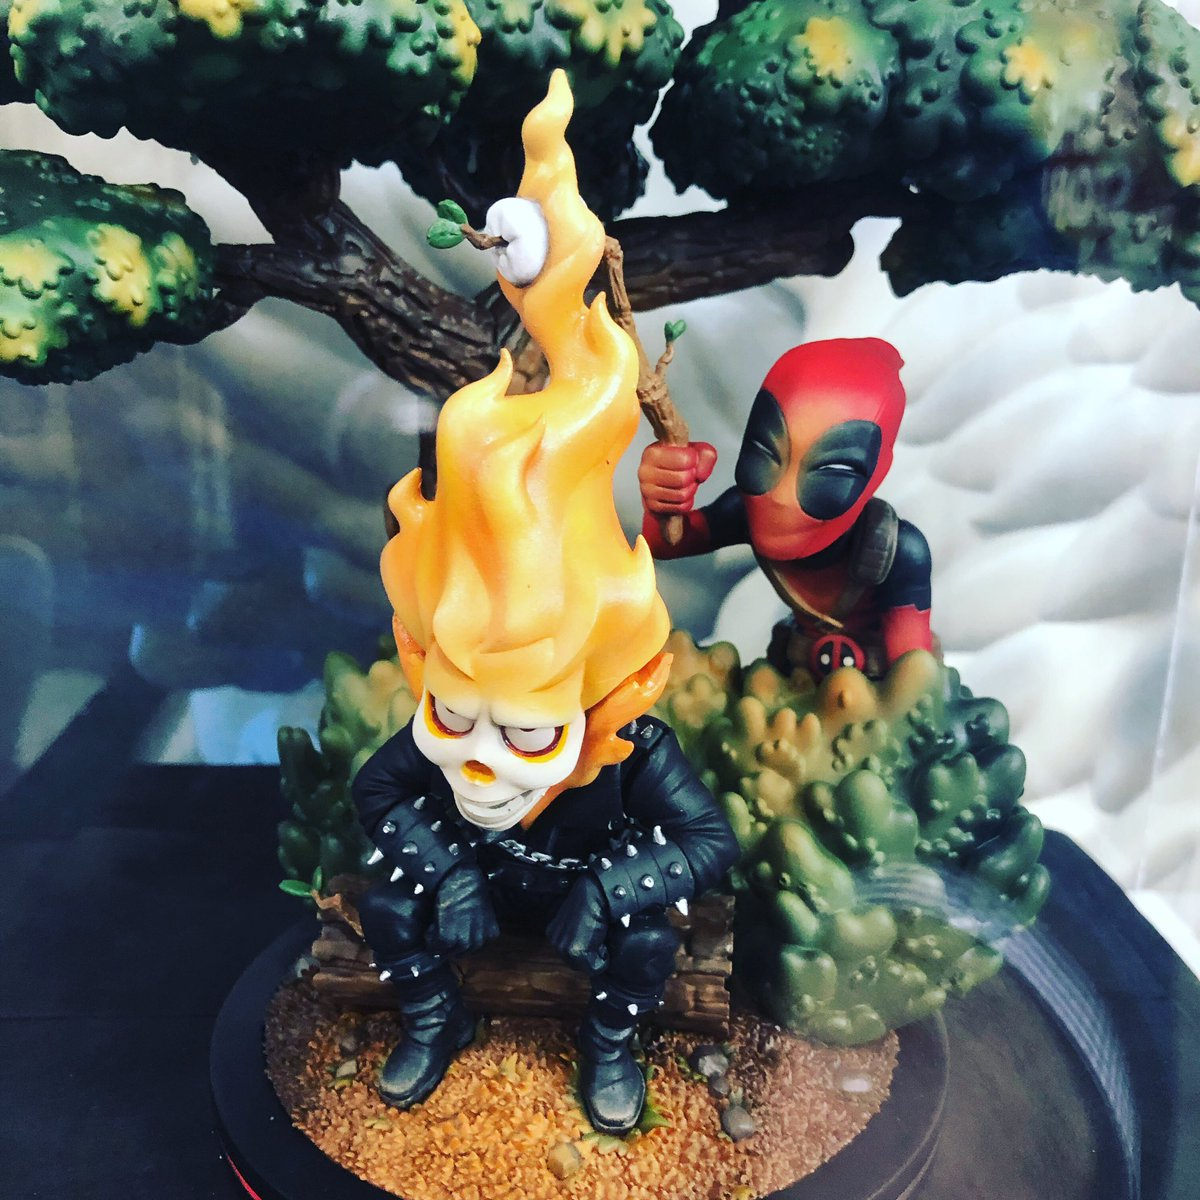 Mmm, toasted marshmallows. You can almost smell 'em. #toyfair #deadpool #ghostrider #marvel